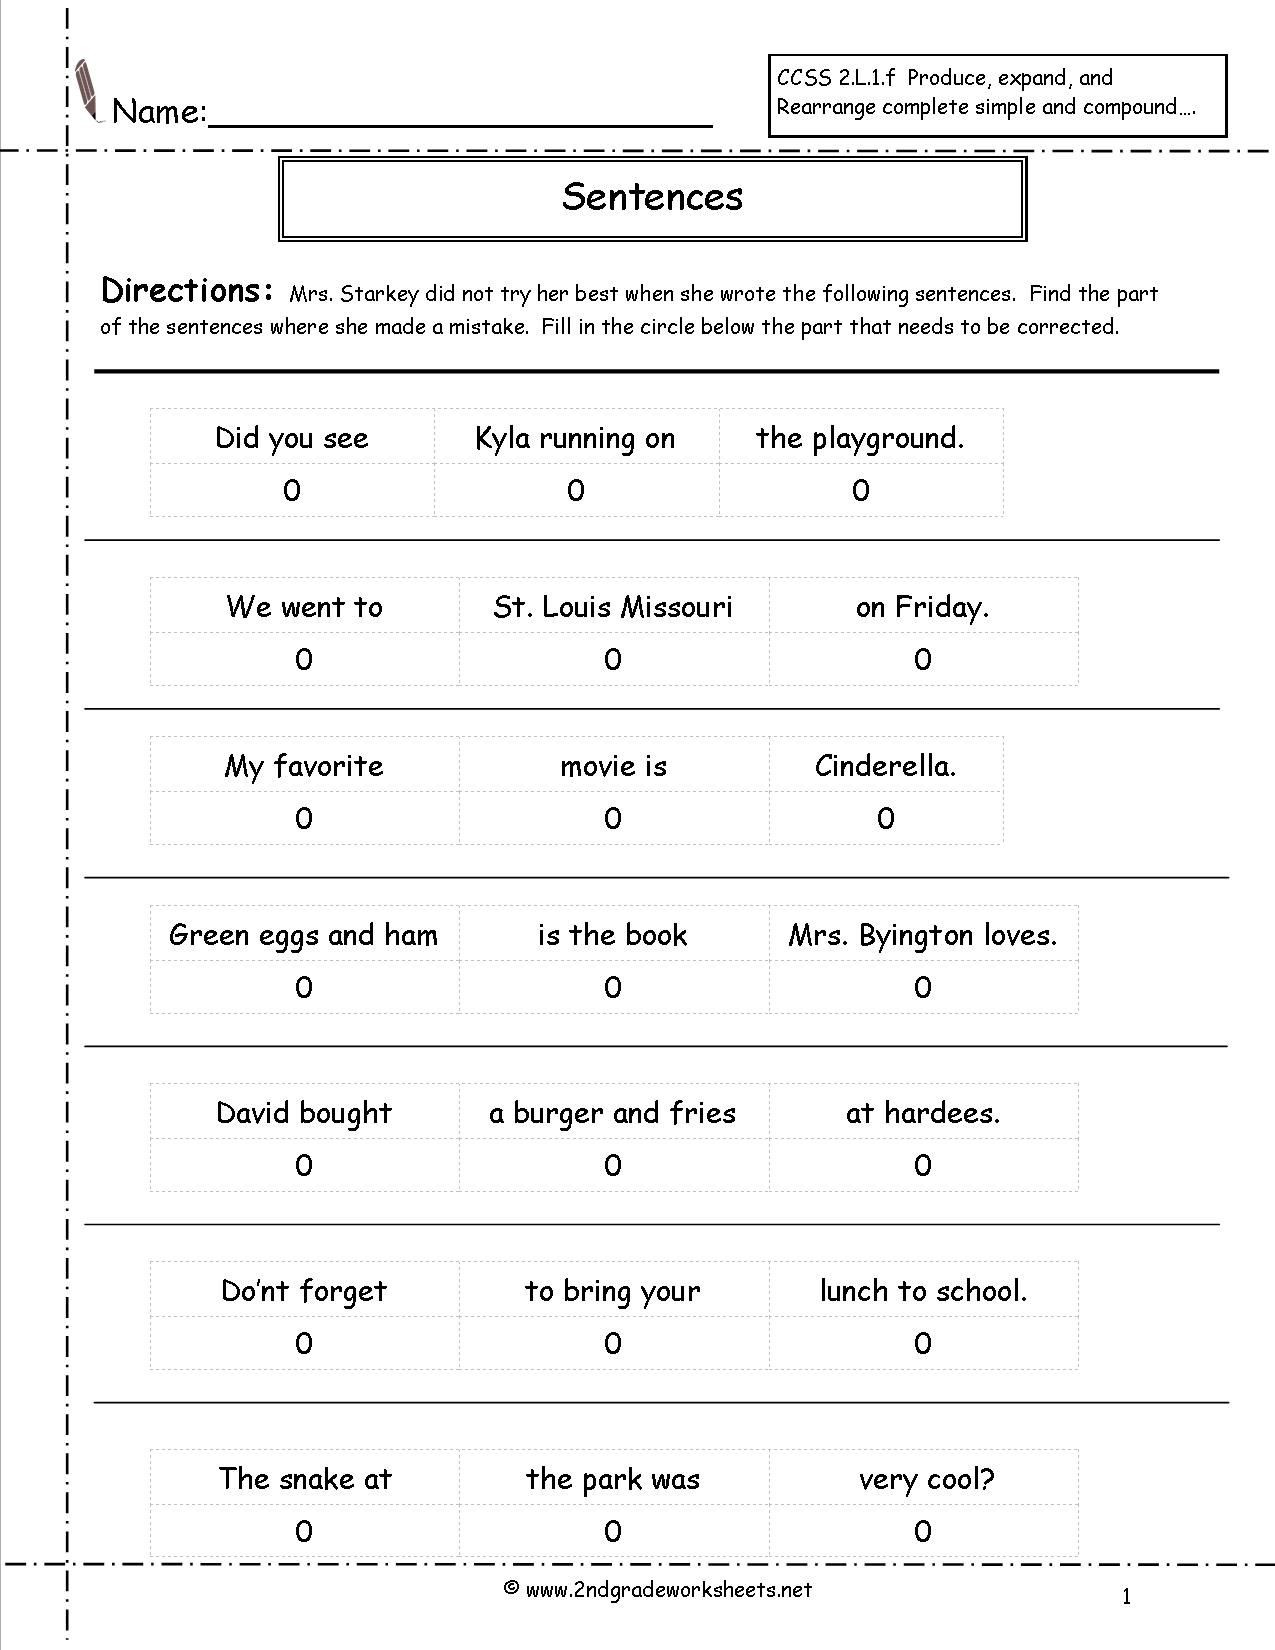 Sentence Correction Worksheets 2nd Grade Correct the Sentence Worksheet